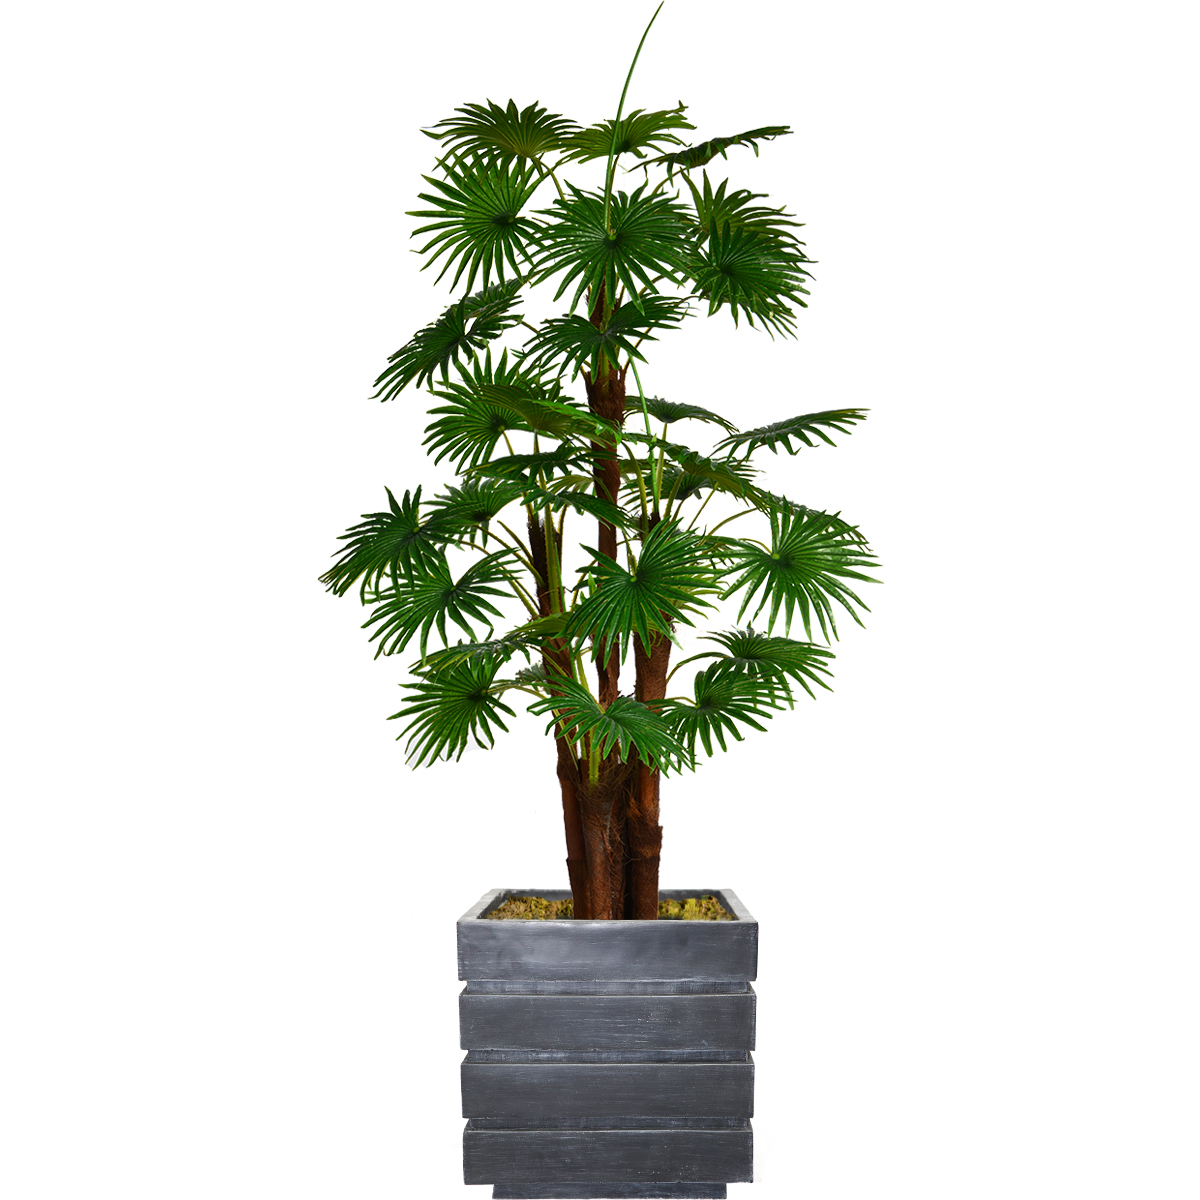 """72"""" Tall Fan Palm Tree Artificial Indoor/ Outdoor Décor Faux Burlap Kit and Fiberstone Planter By Minx NY"""